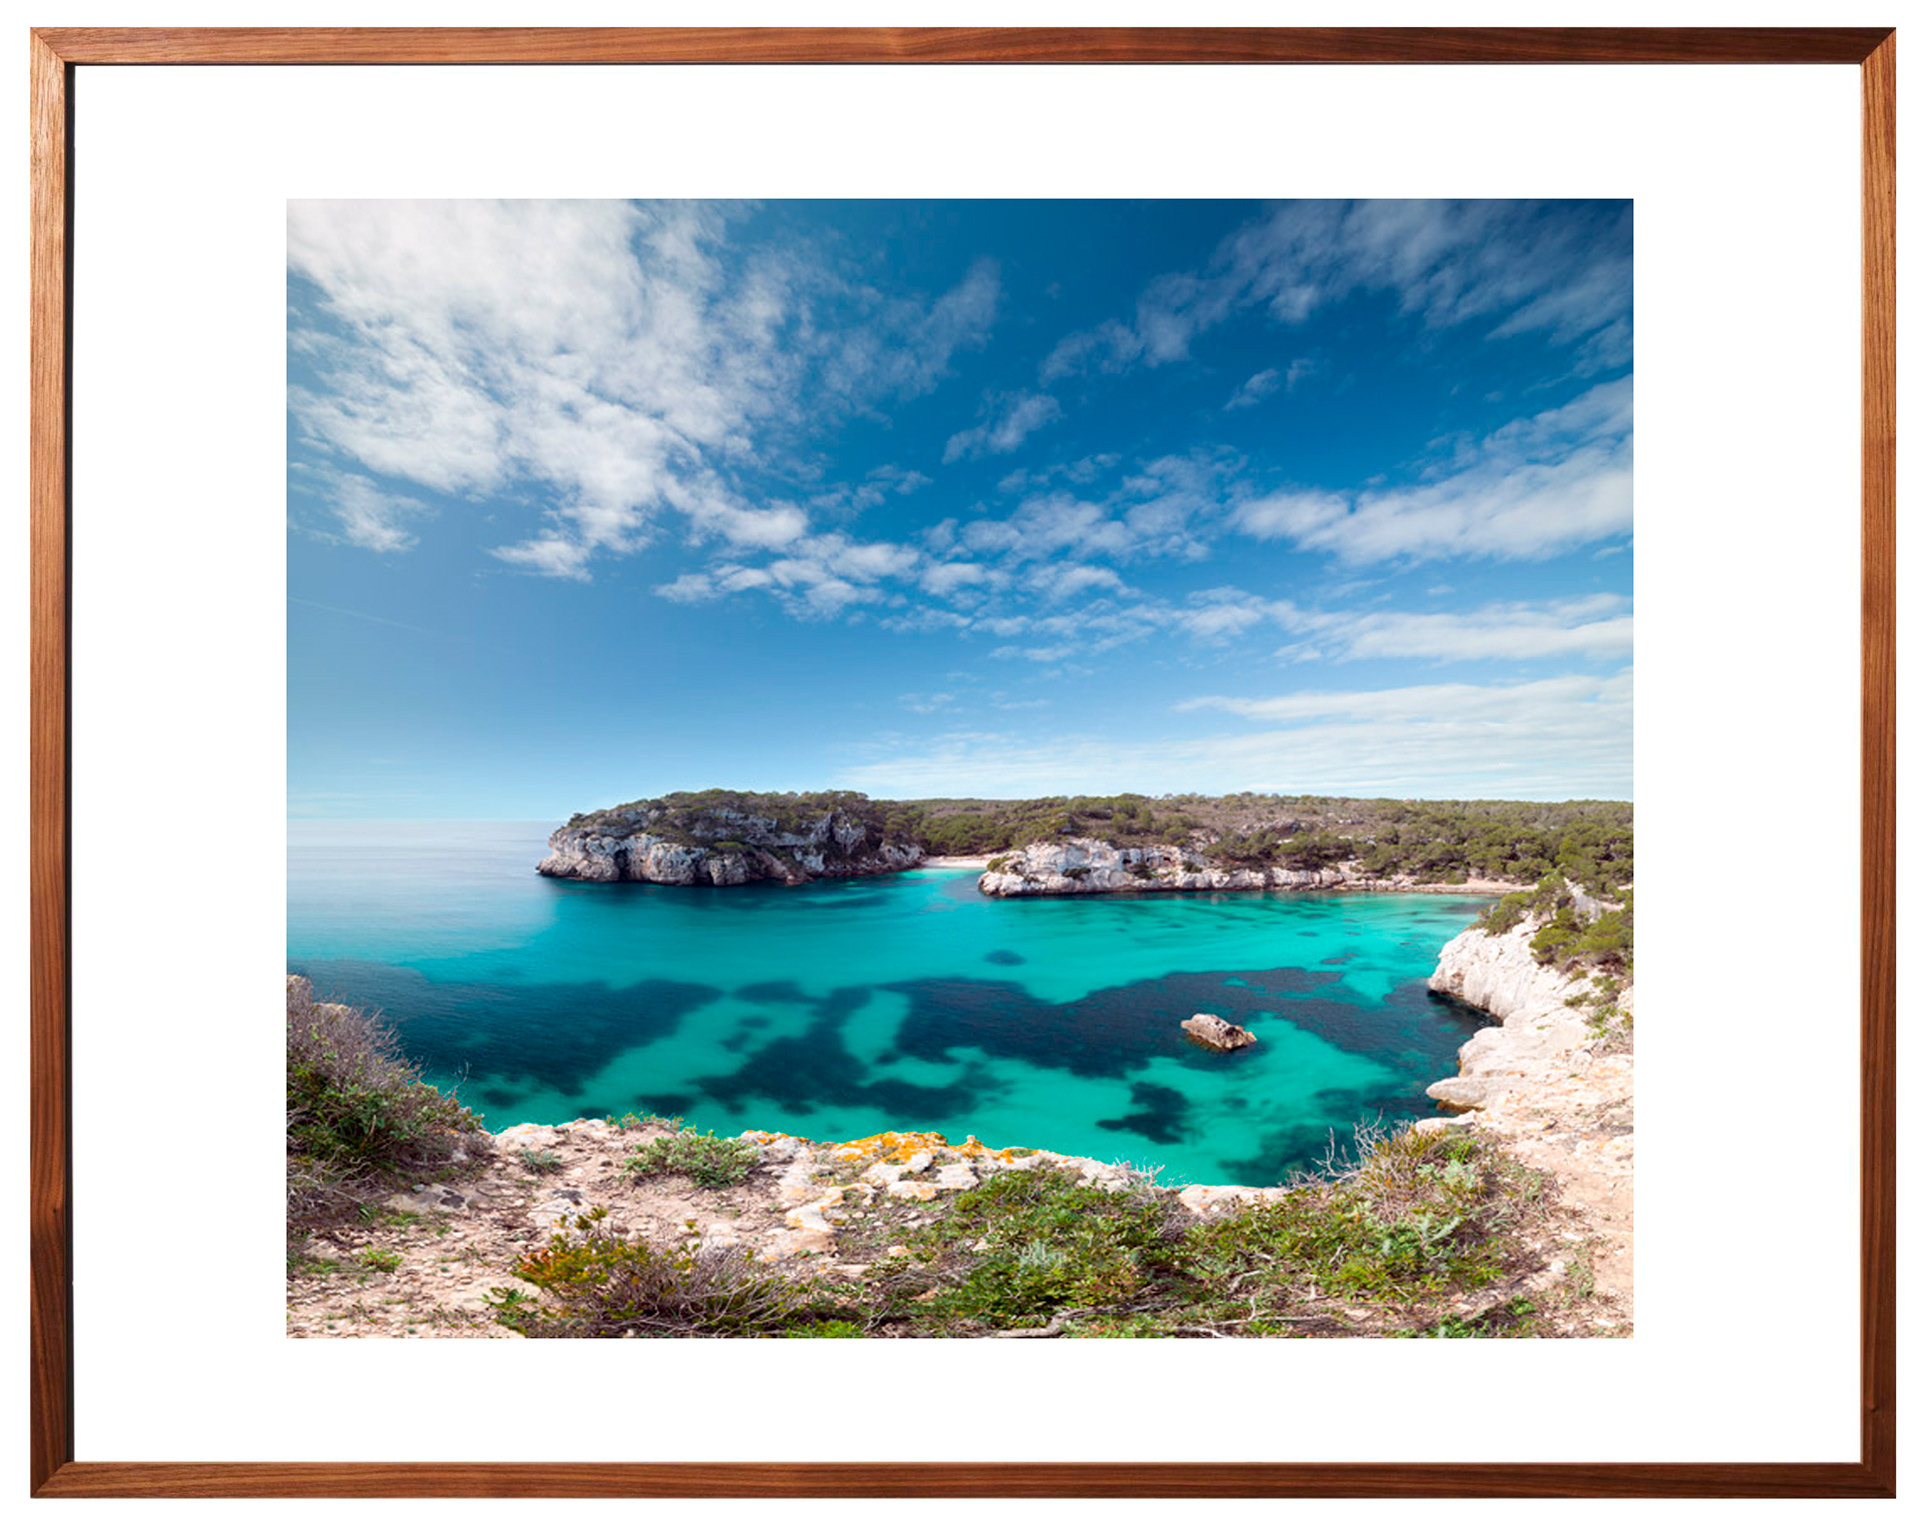 Pascval photography panorama panorama fireworks by pascval 1 limited edition of 6 fine art prints photo frame price on request jeuxipadfo Gallery